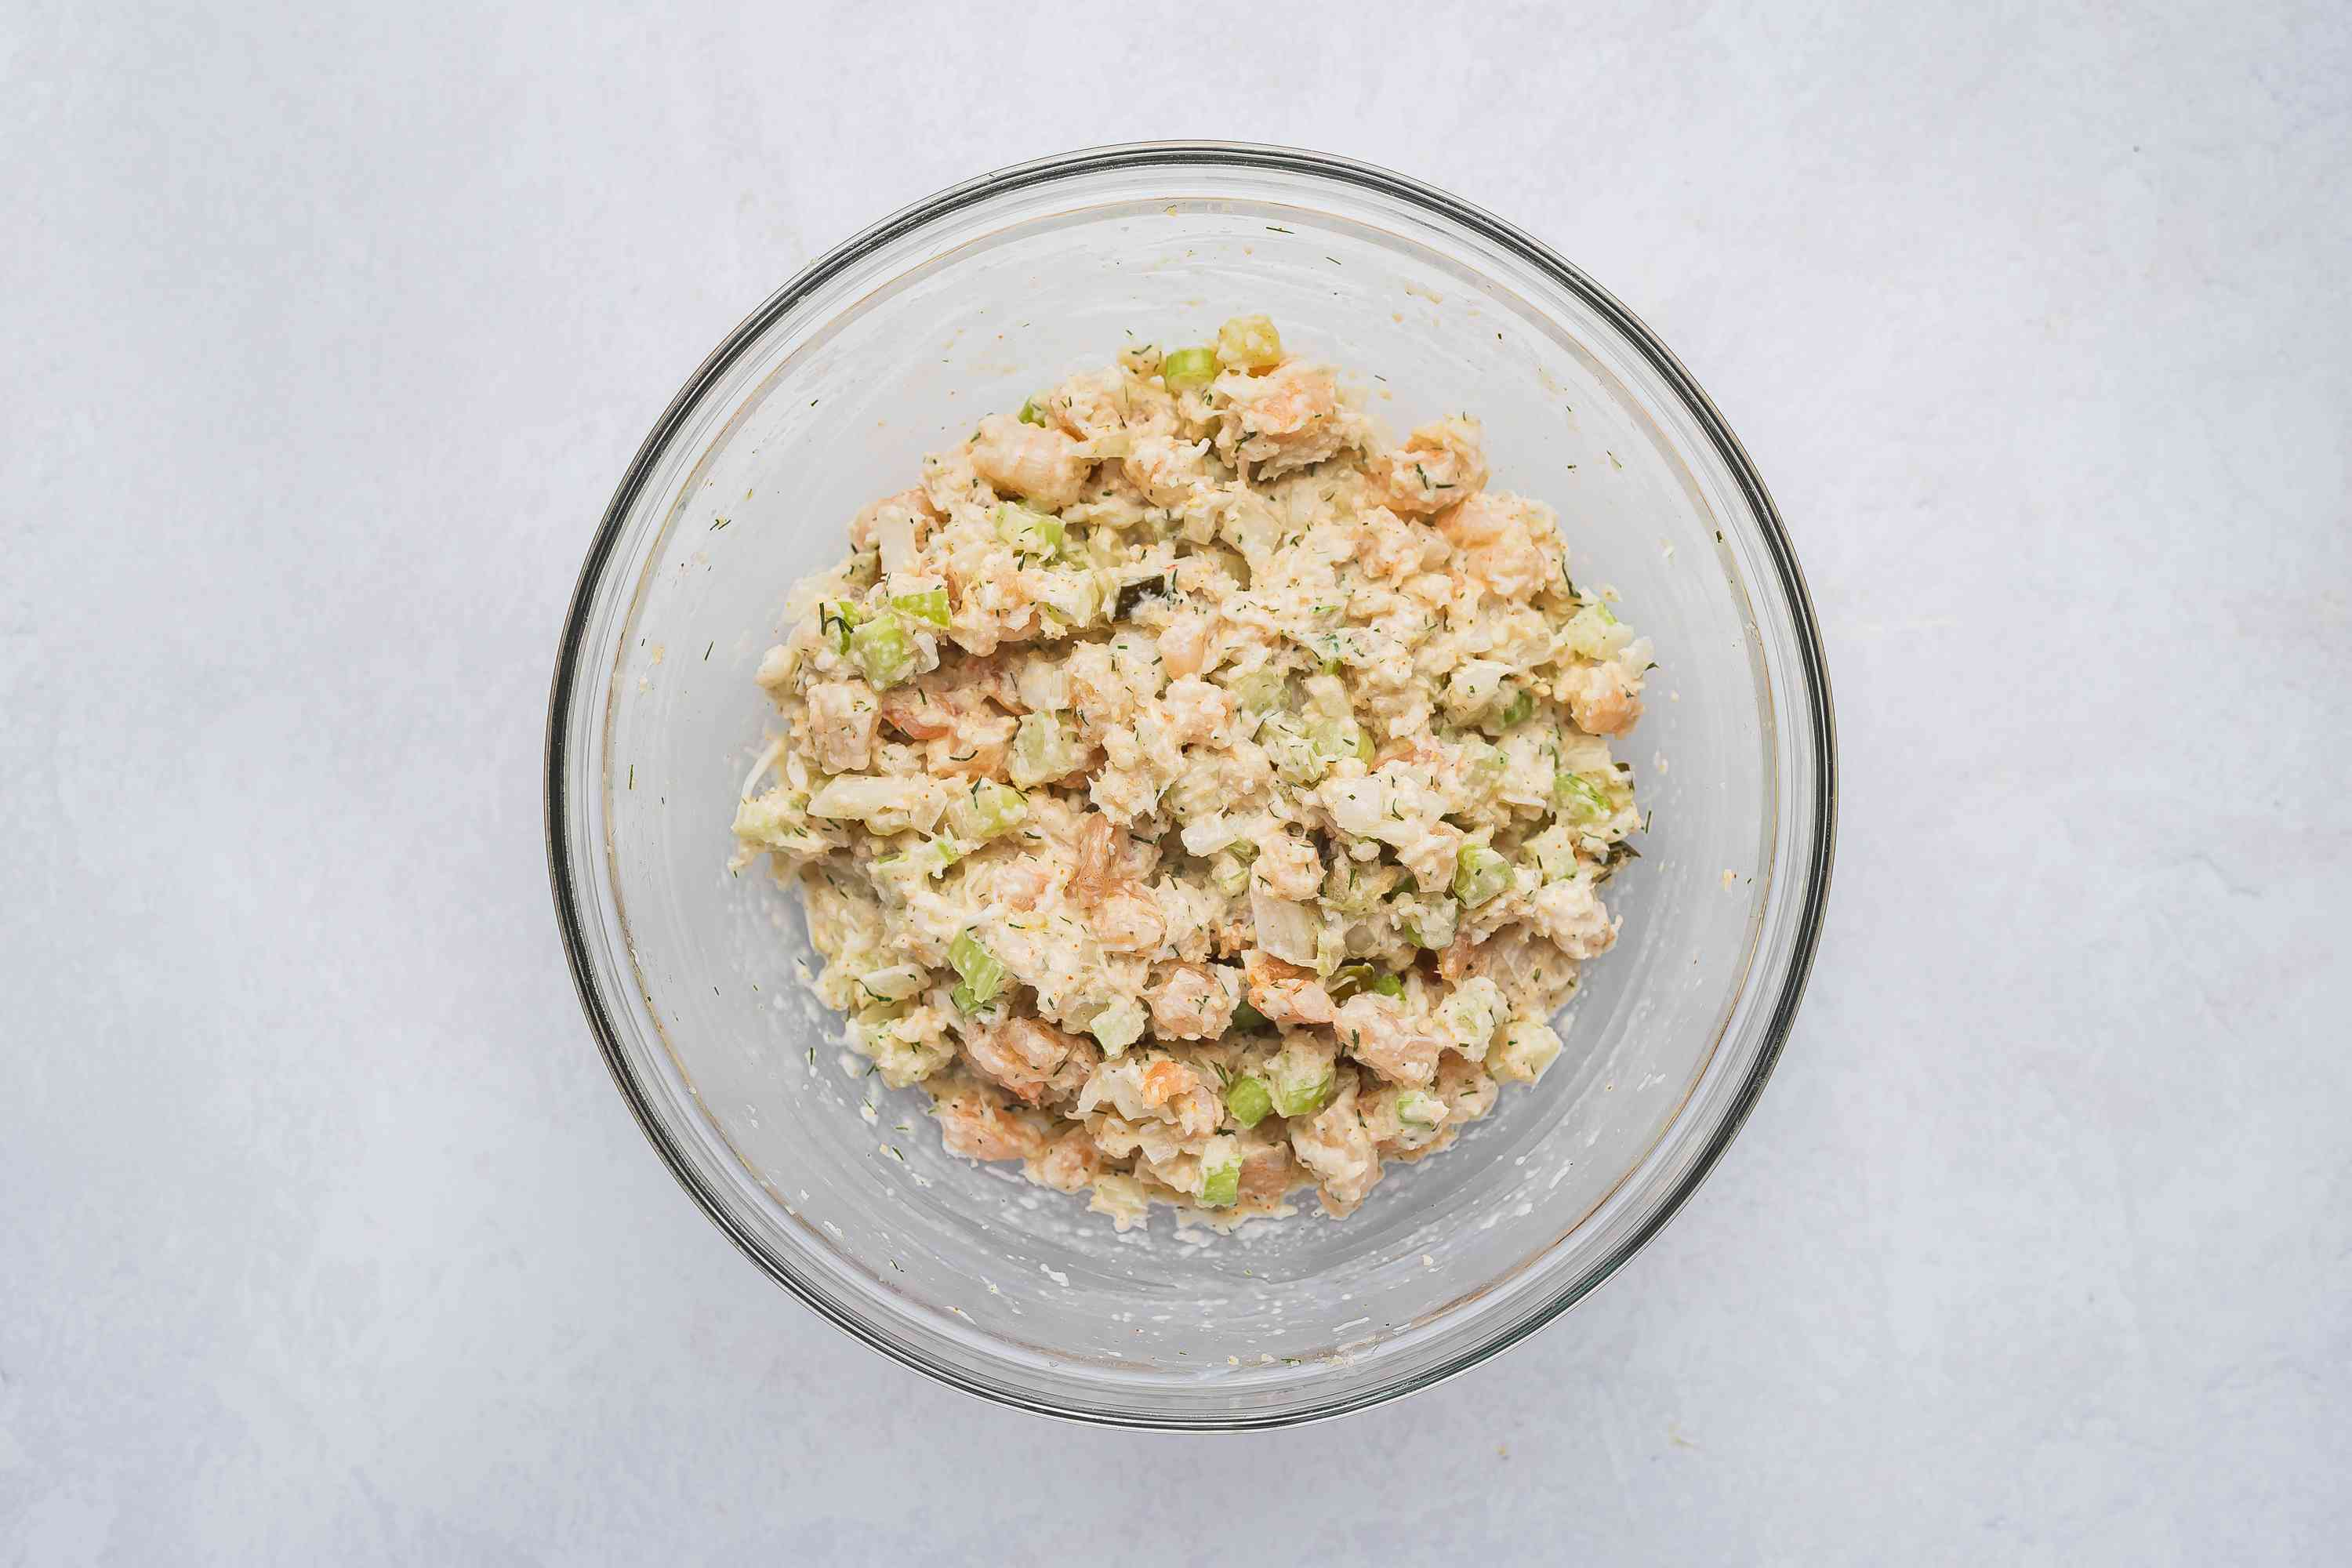 Mayo added to crab and shrimp mixture in a bowl